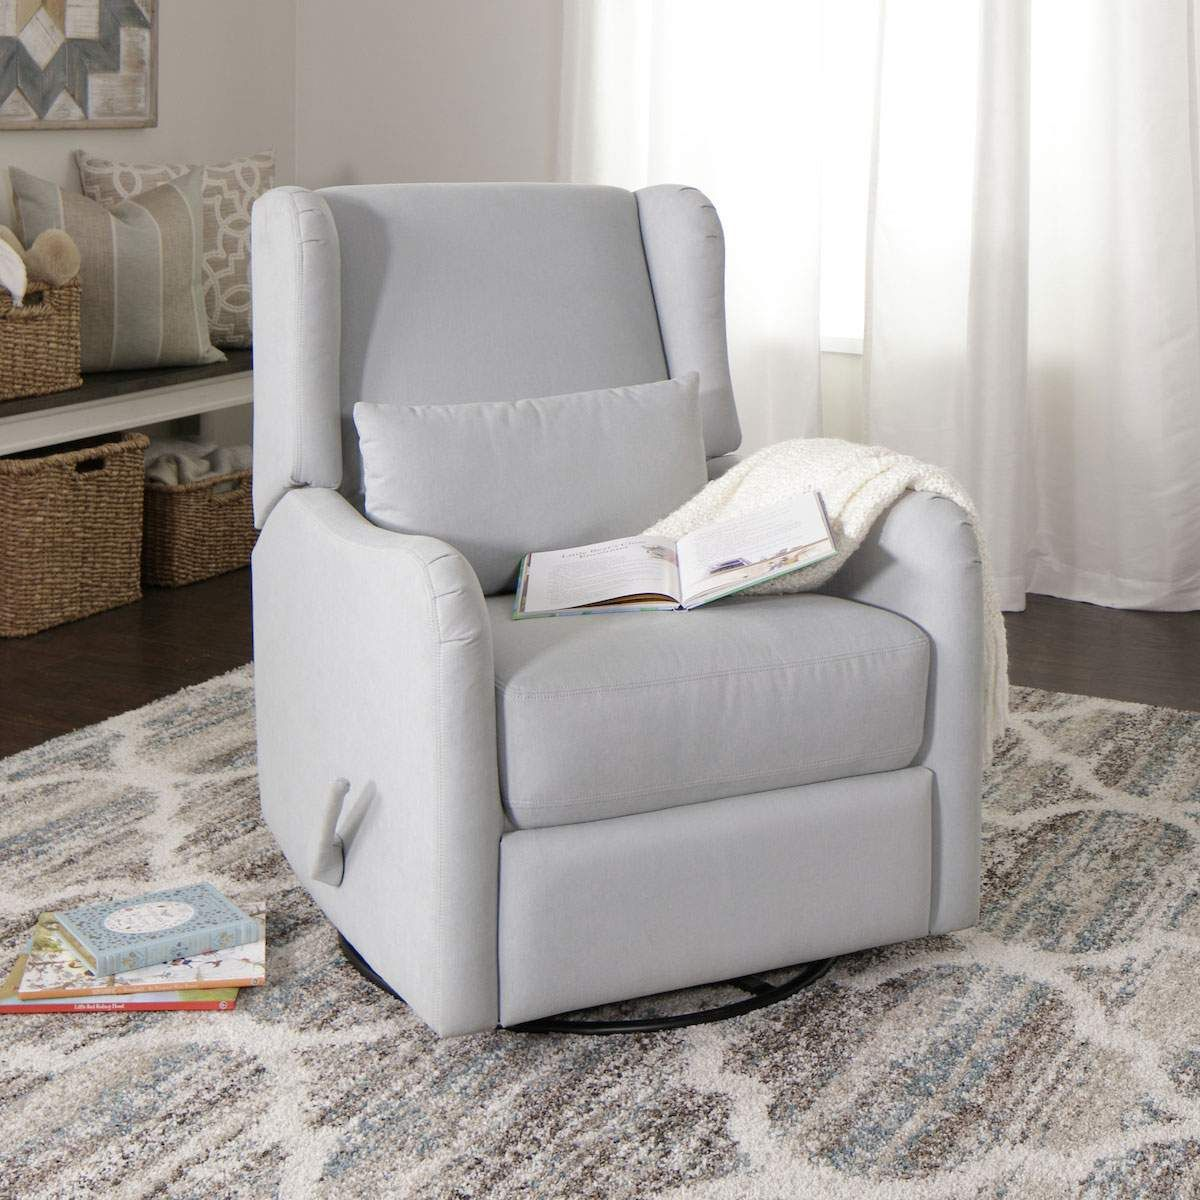 jerome's swivel chairs leather dining pottery barn serenity glider recliner in grey nursery pinterest jerome s furniture